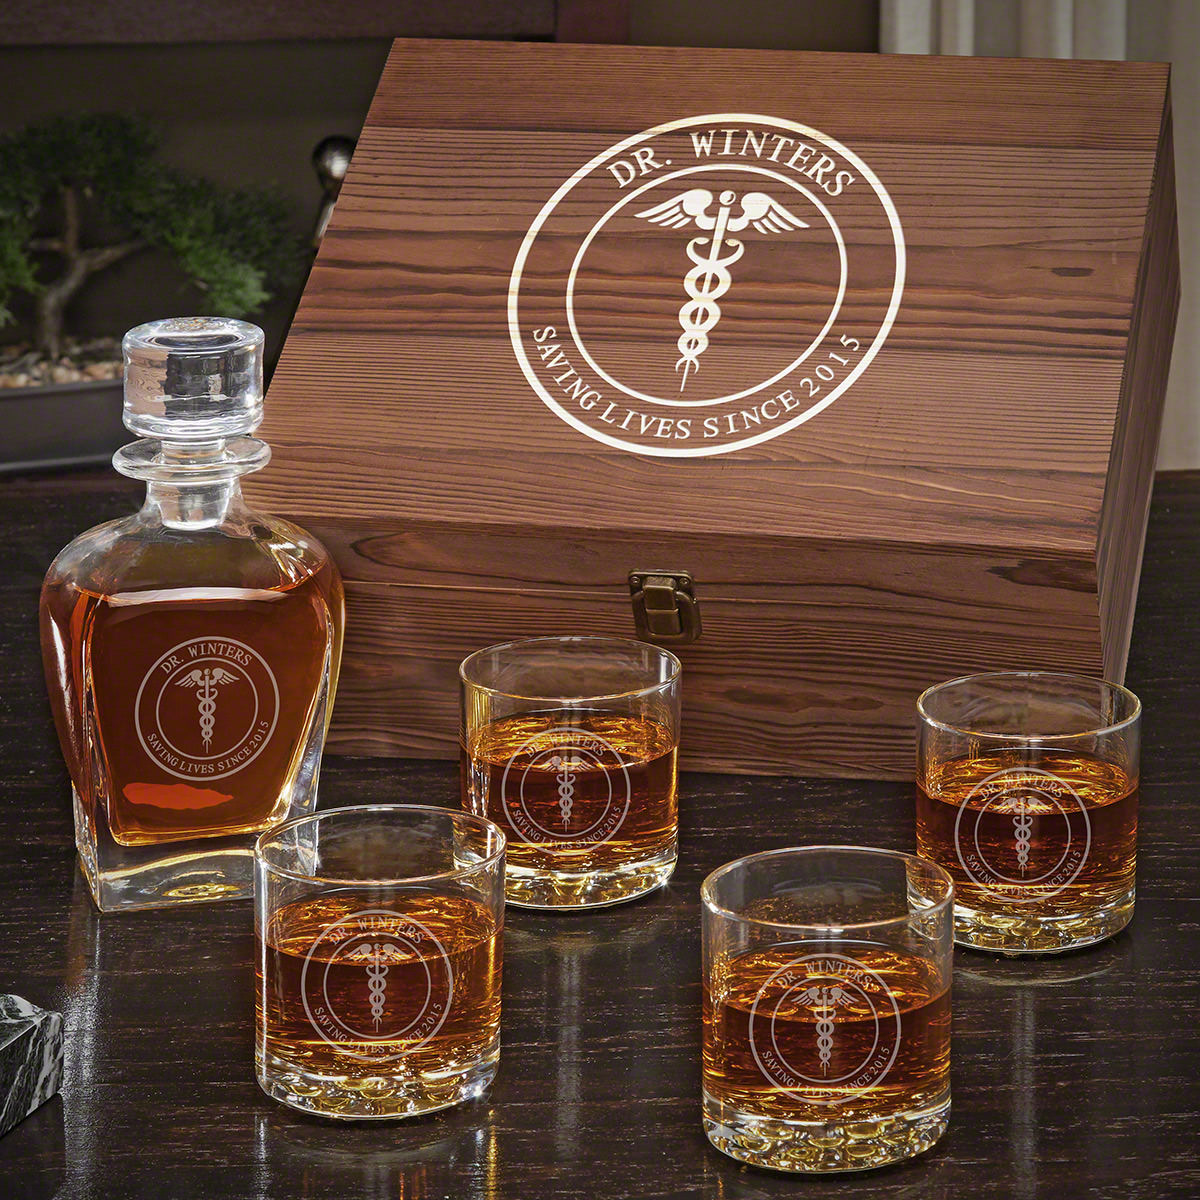 Medical Arts Personalized Whiskey Draper Decanter Set with Buckman Glasses - Gift for Doctors